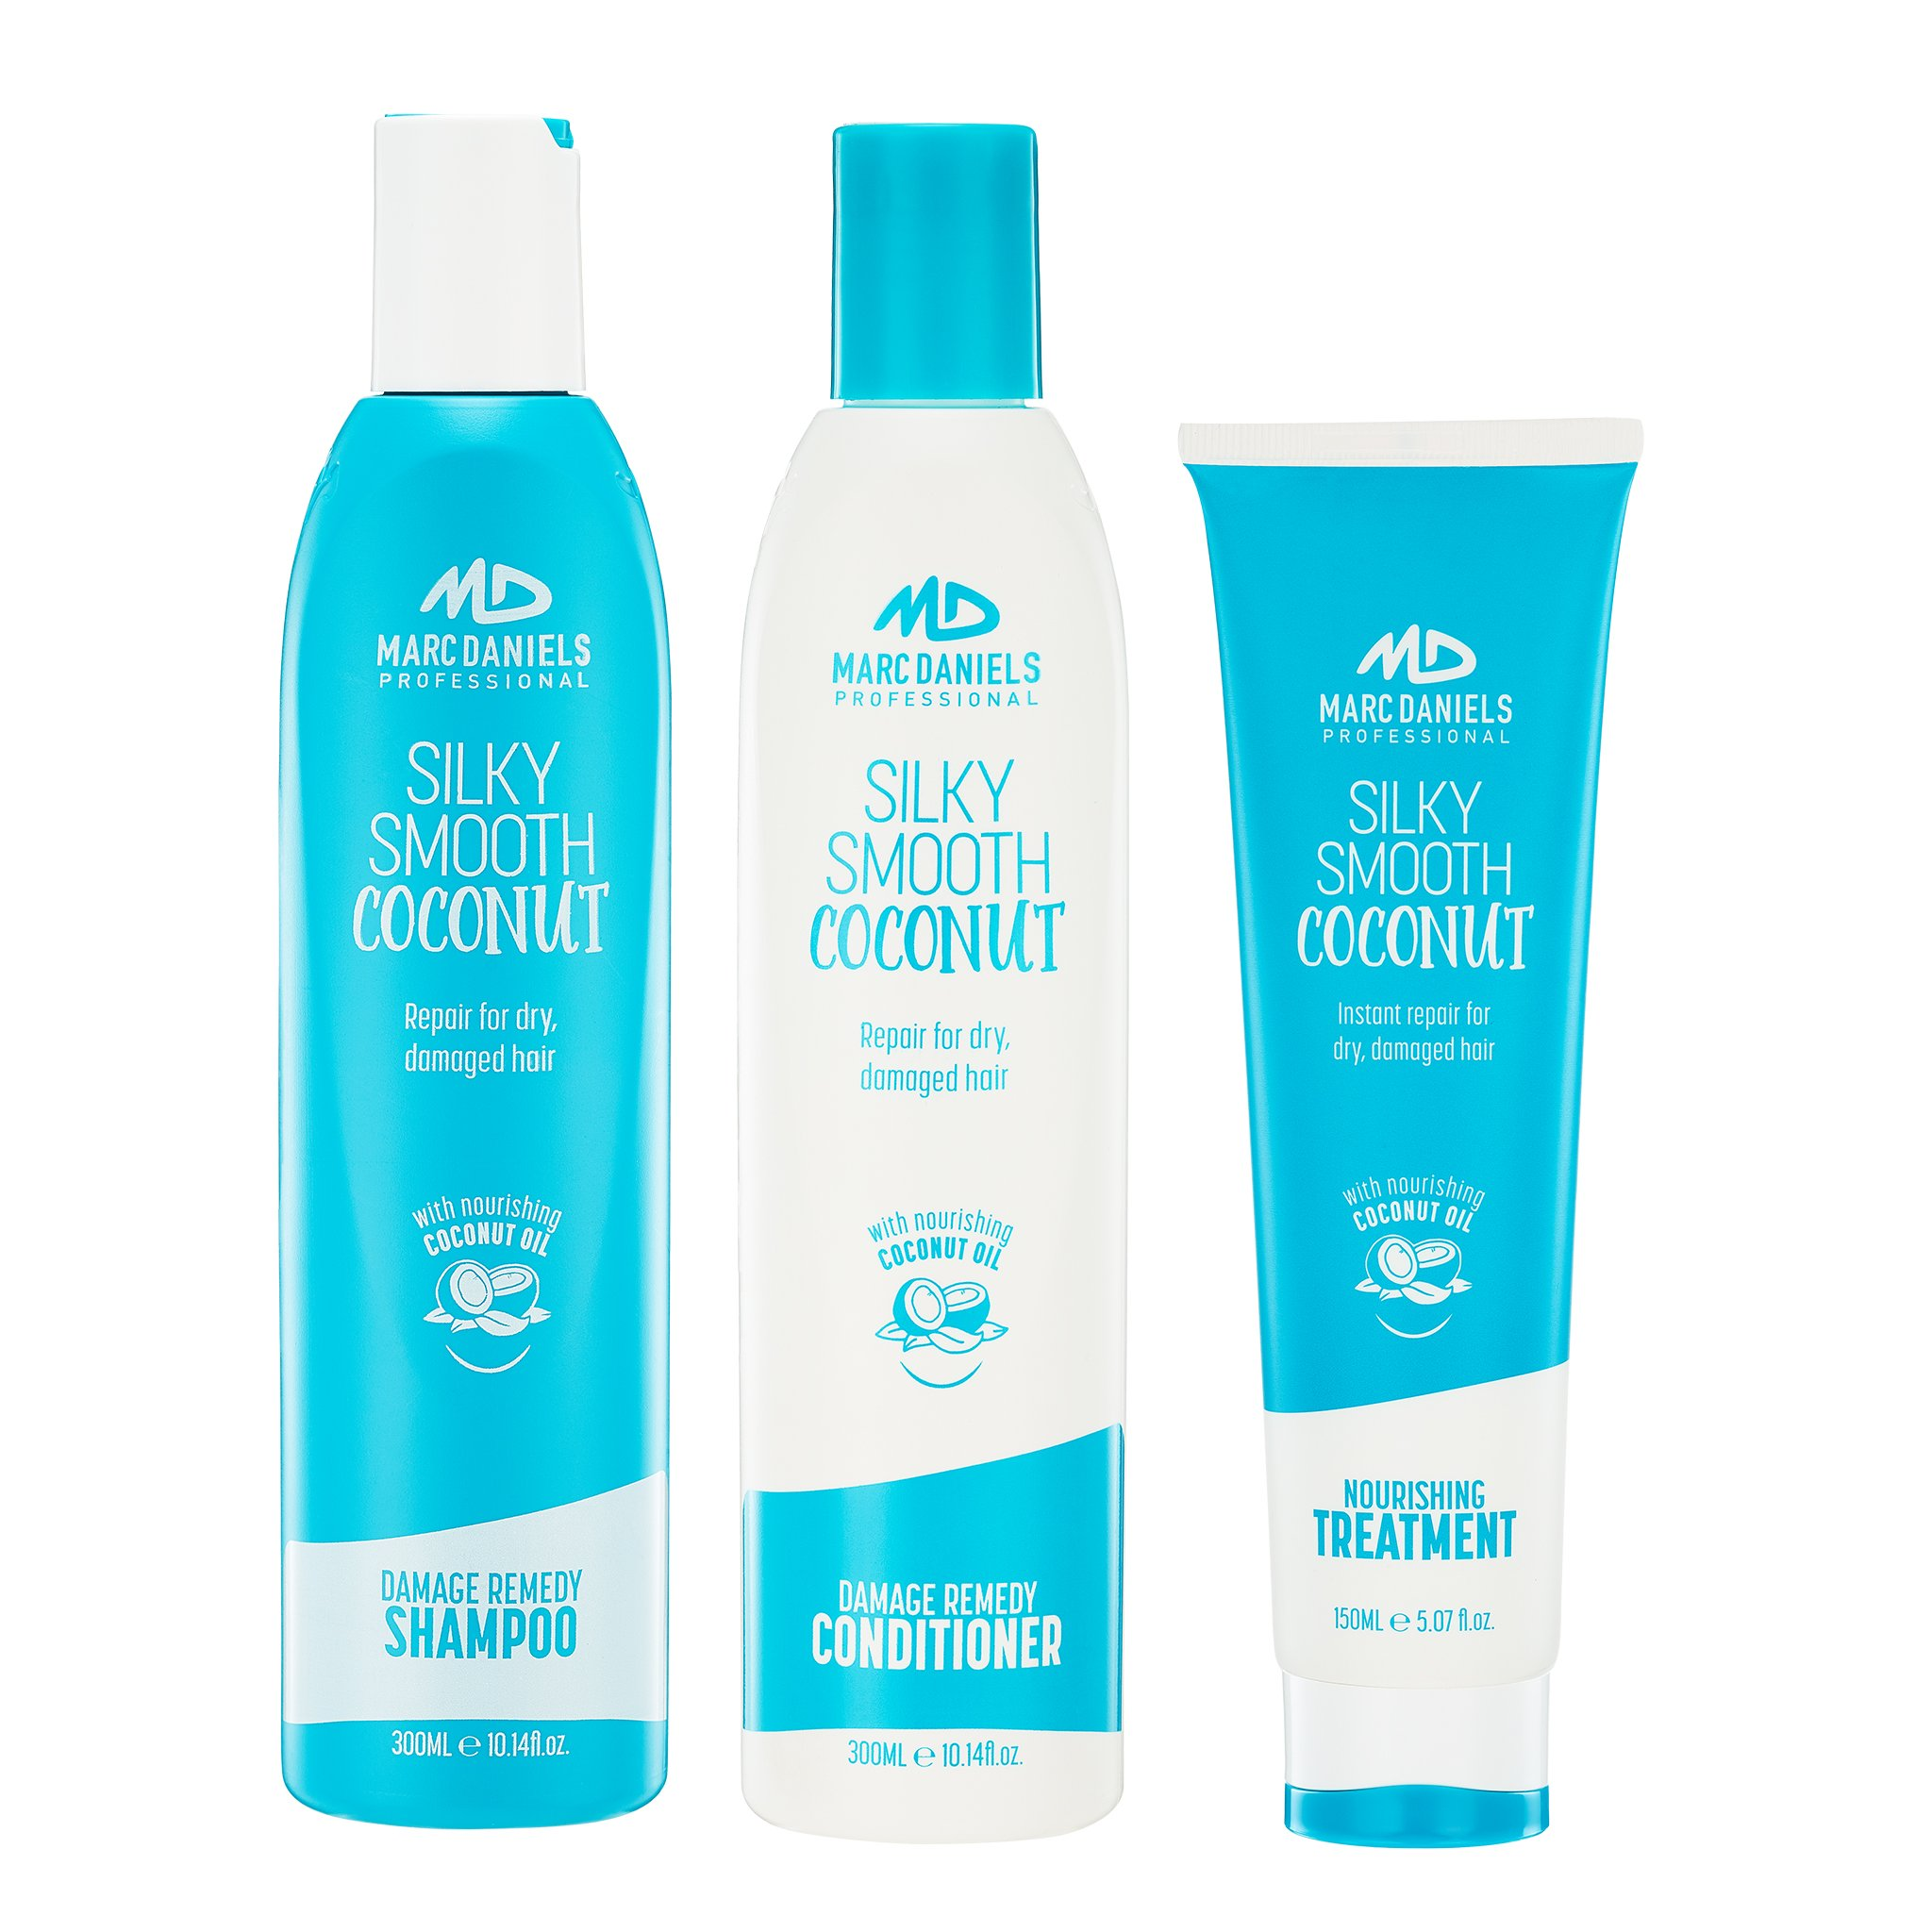 Coconut Oil Shampoo and Conditioner Sulfate Free with Hair Repair Treatment for Color Treated, Dry, Brittle and Damaged Hair. Deep Conditioning, Instantly Adds Restore Shine & Manageability by MARC DANIELS PROFESSIONAL